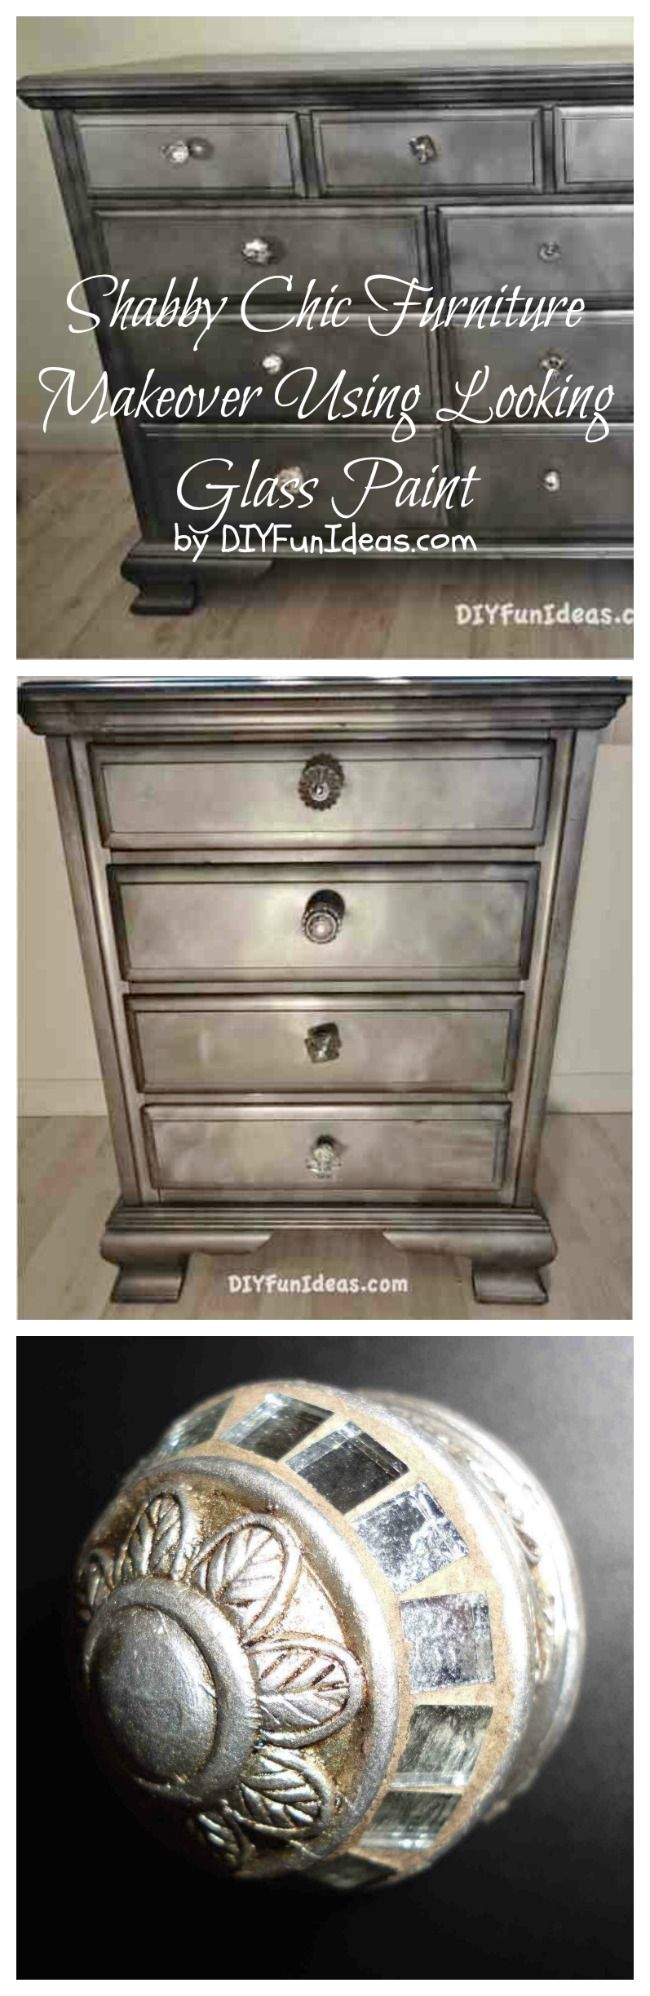 25 Best Ideas About Metallic Furniture On Pinterest Metallic Dresser Silver Dresser And